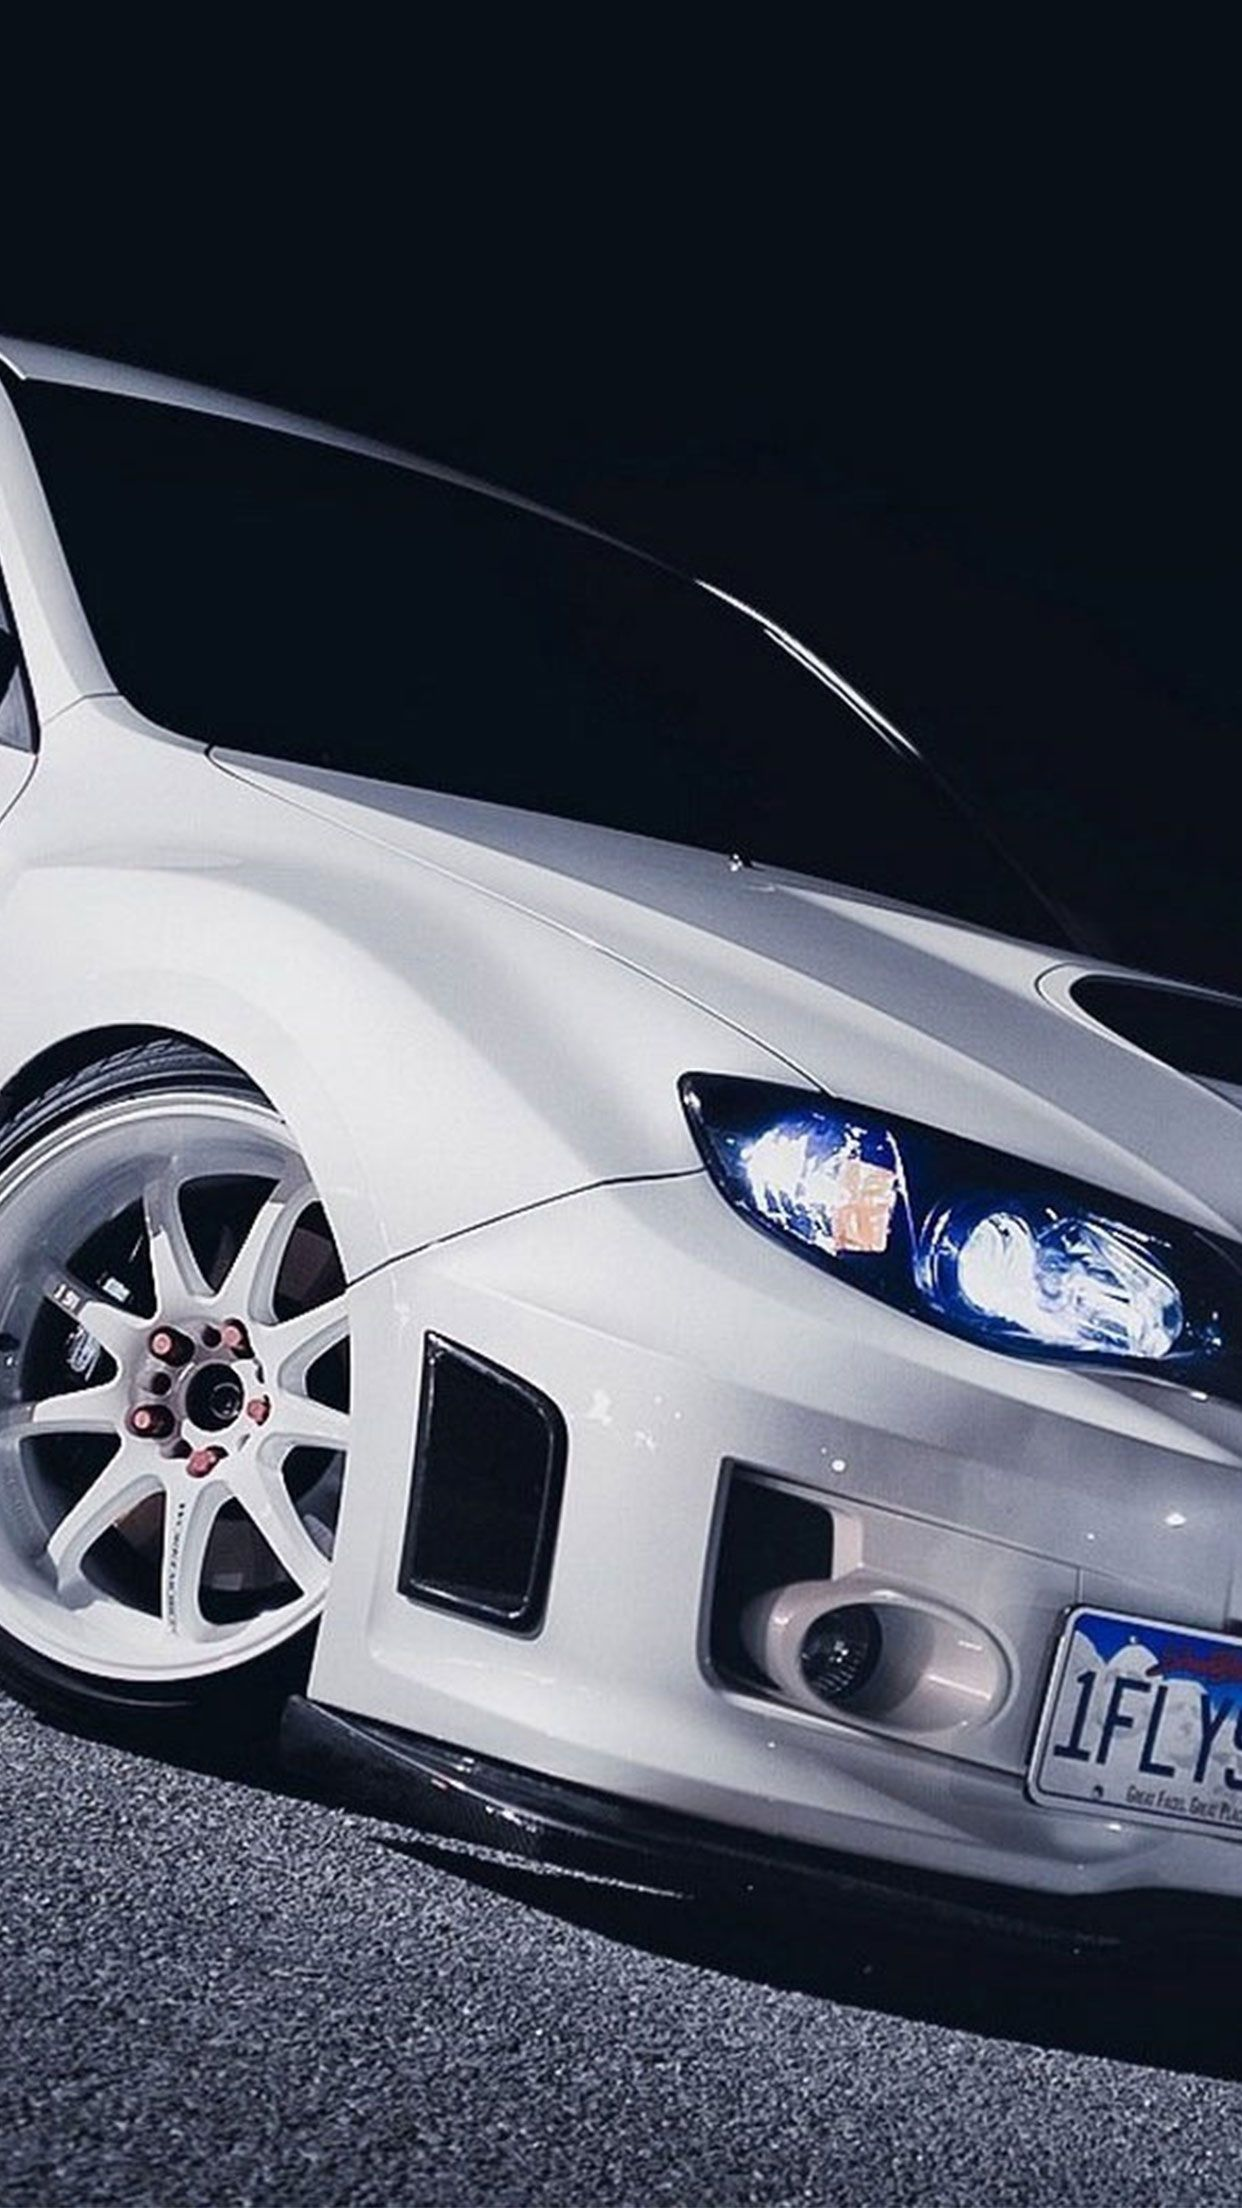 Subaru White Car Wallpaper For Iphone Android Subaru Wallpaper